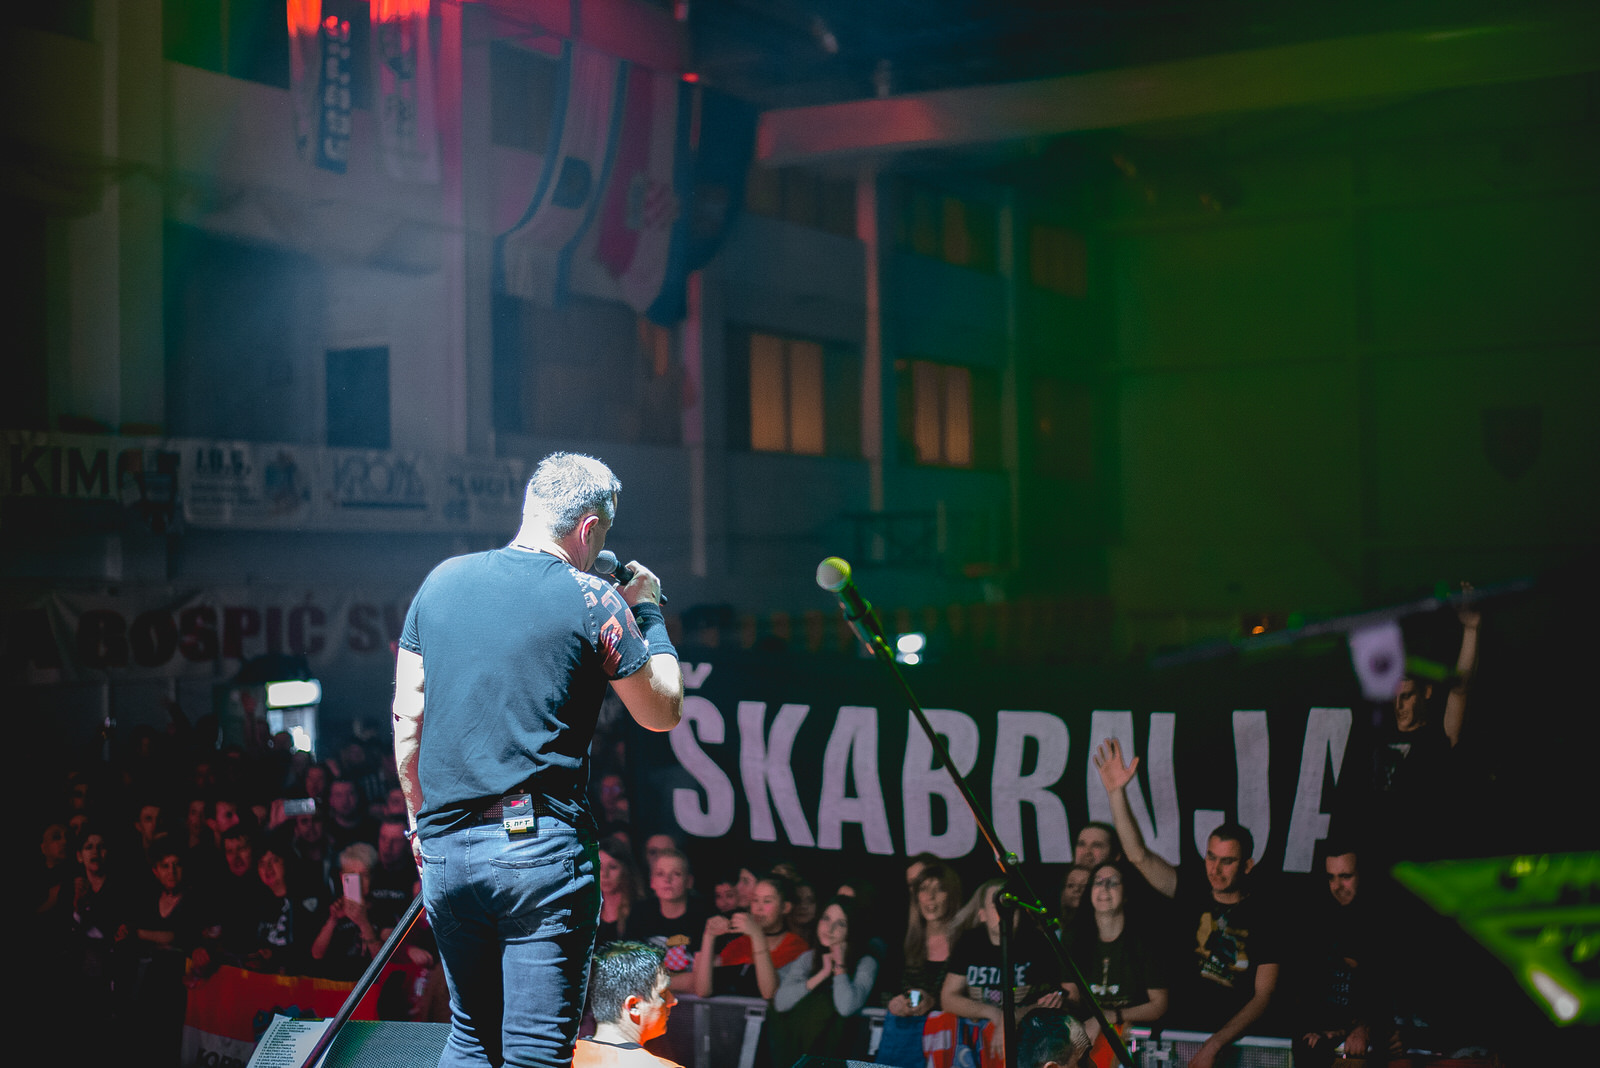 likaclub_gospić_koncert-thompson_2018-94